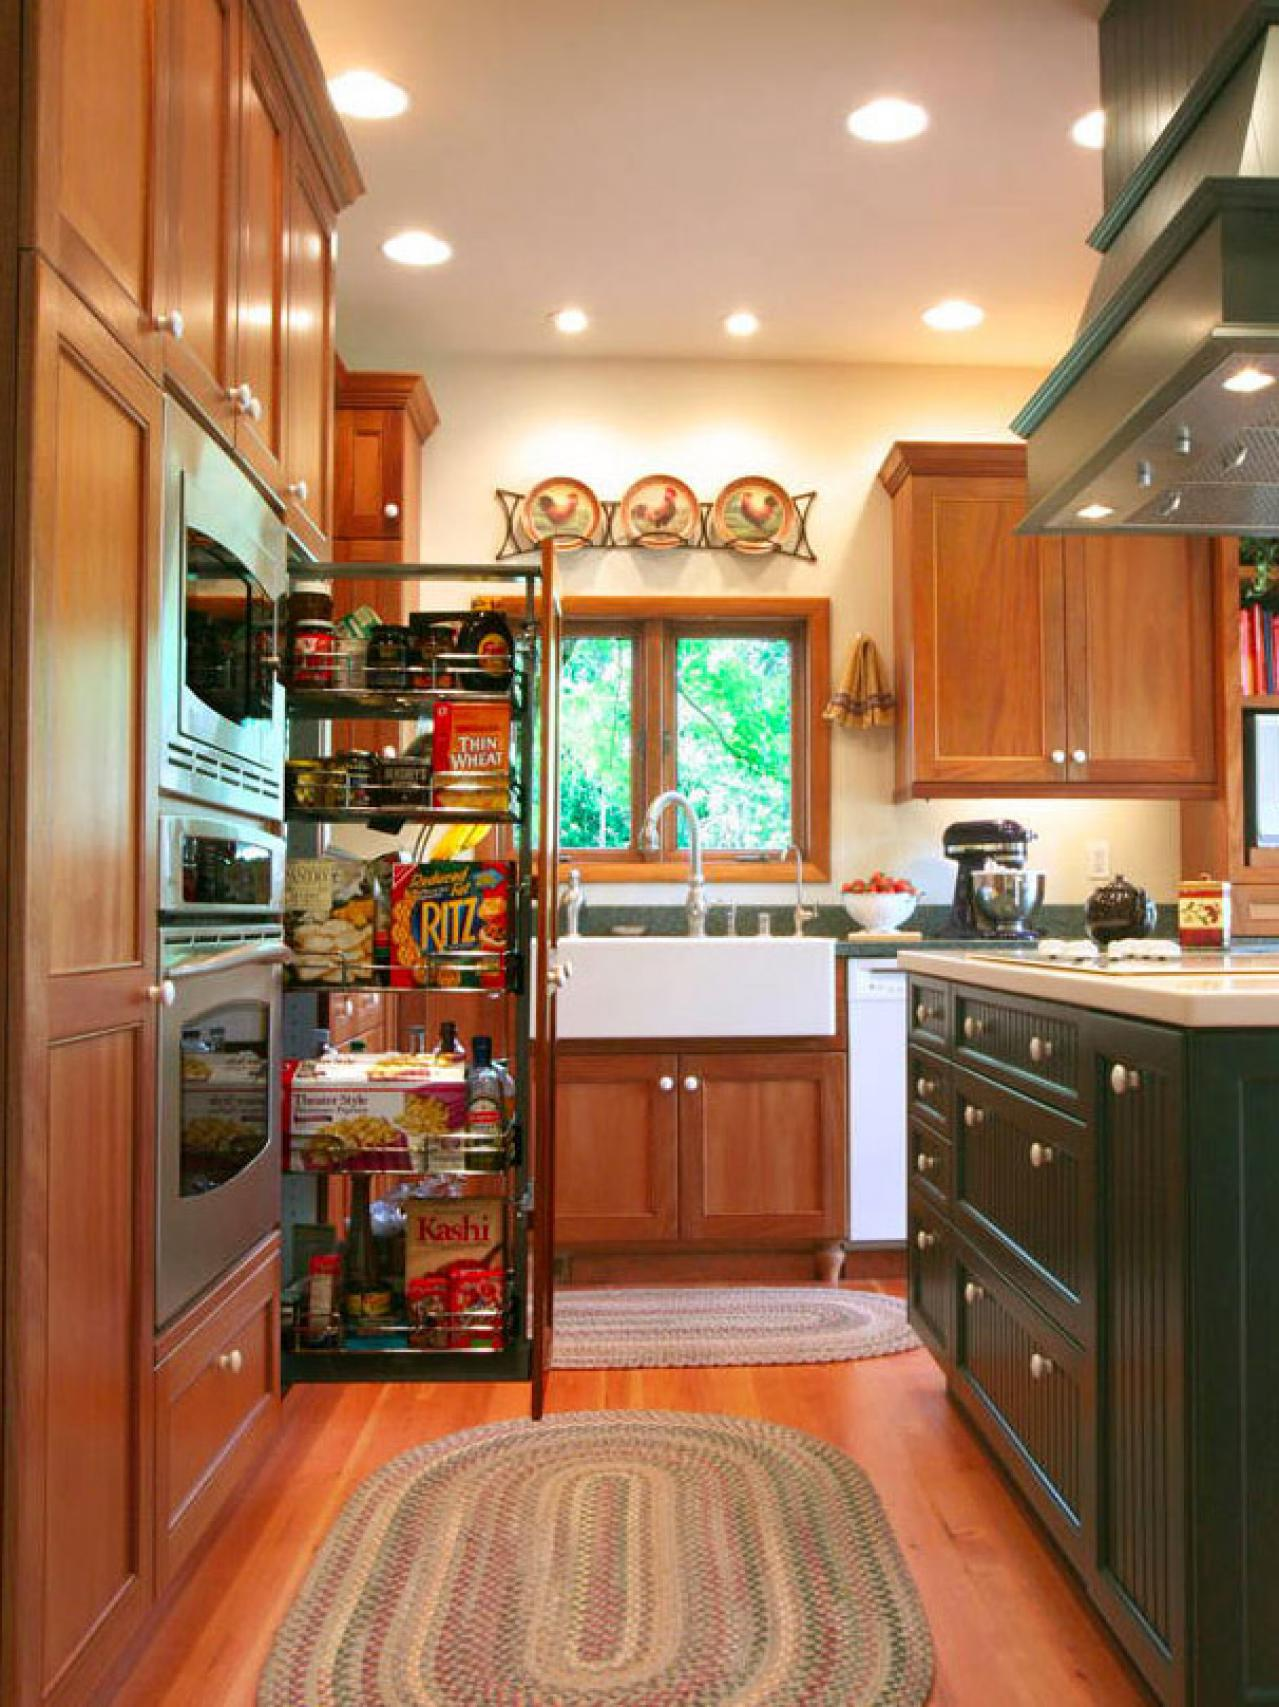 Small kitchen design ideas and solutions kitchen ideas for Pantry ideas for a small kitchen